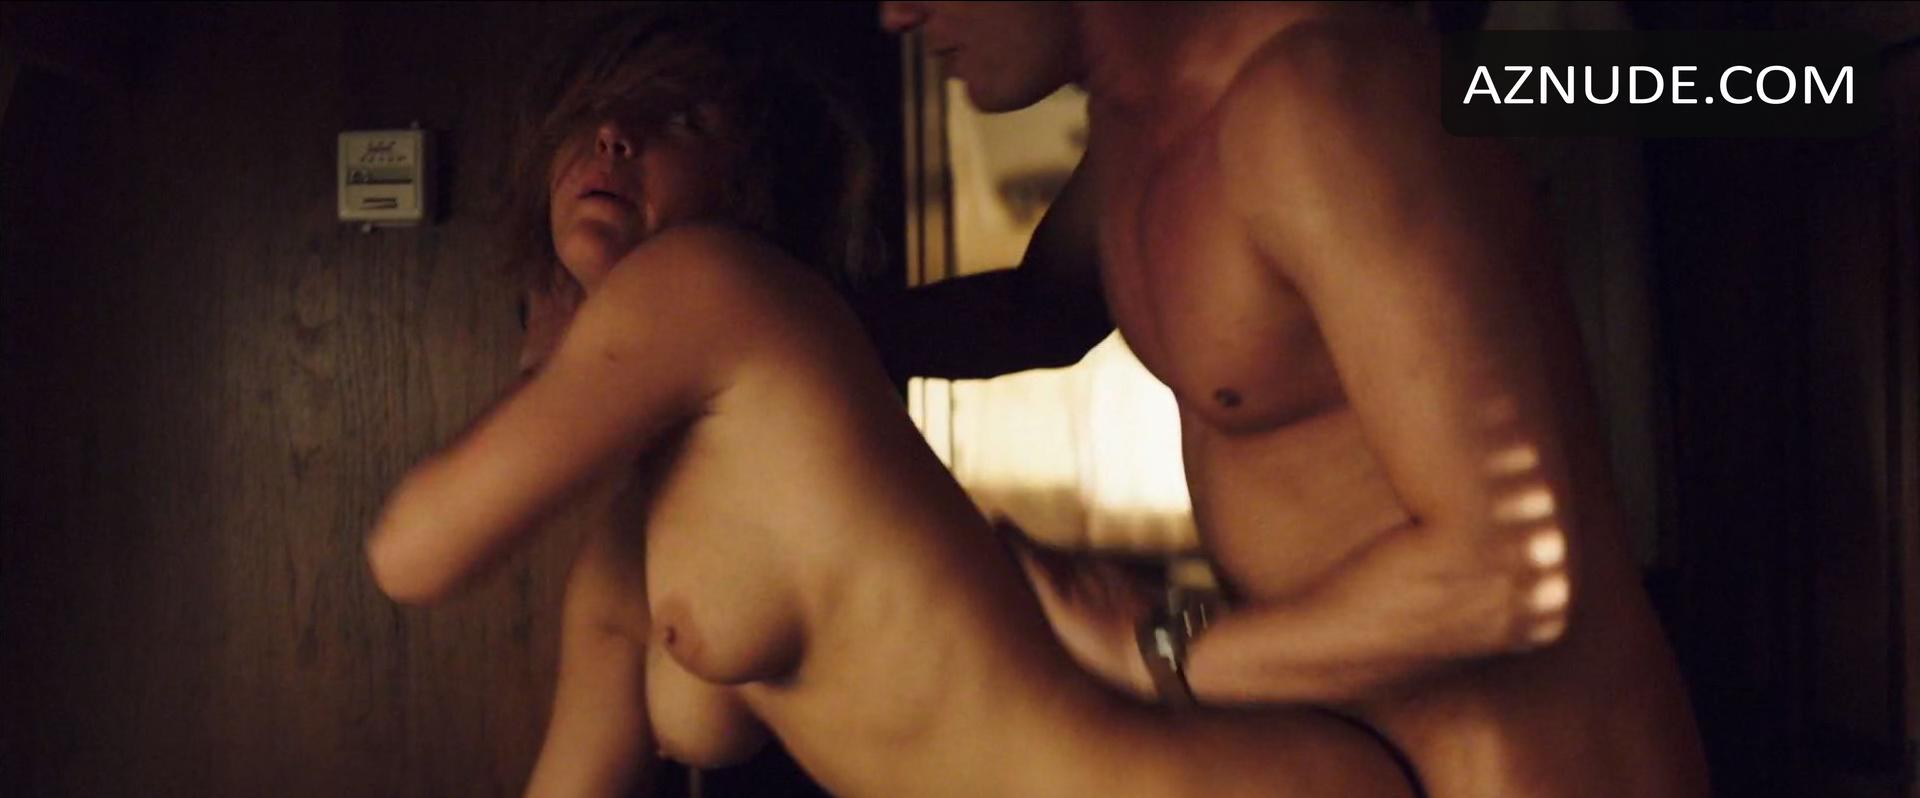 Adele exarchopoulos nude sex scene in le fidele - 2 part 3